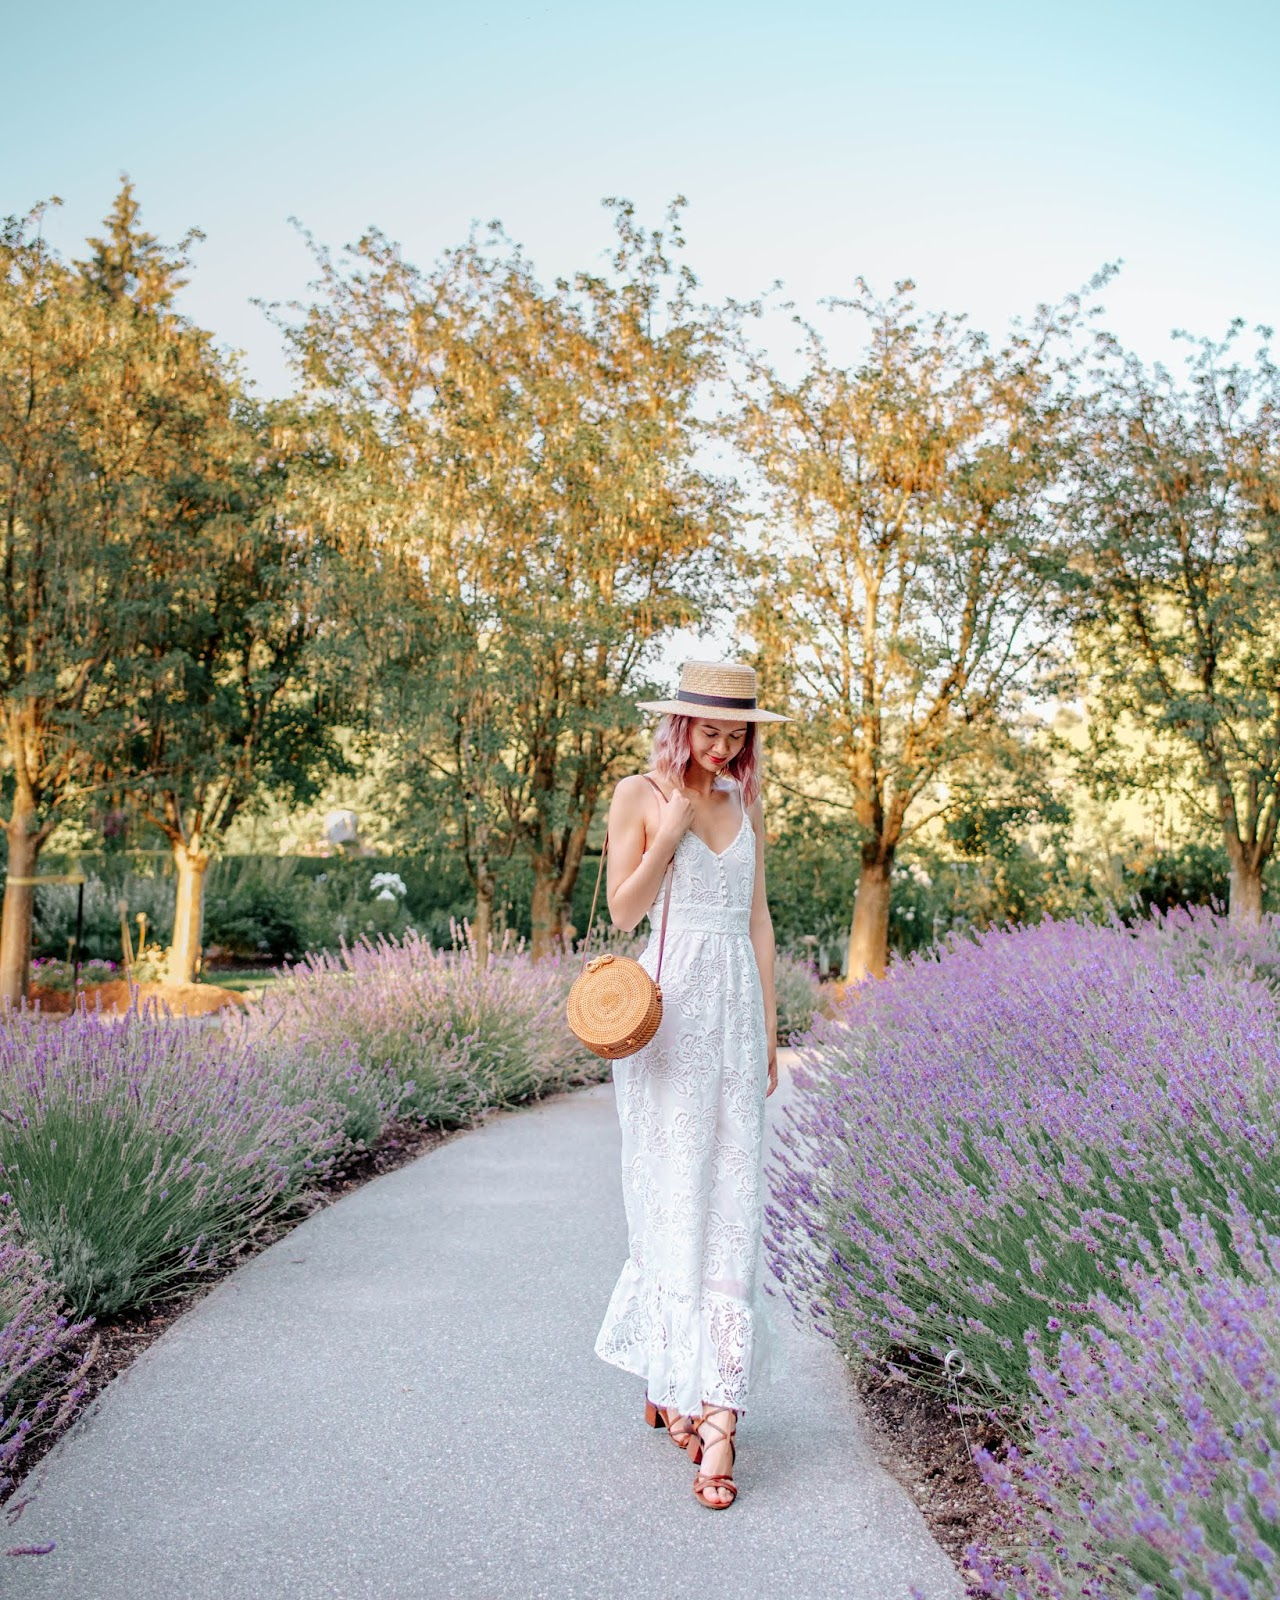 VanDusen Botanical Garden, Vancouver, boater hat, rattan purse, wicker purse, style blogger, travel style, travel blogger, things to do in vancouver, summer lookbook, fall lookbook, fall trends, canadian blogger, canadian fashion, nordstrom, zara fall 2018, roju store, urban outfitters, lavender field, ministry of style, australian fashion